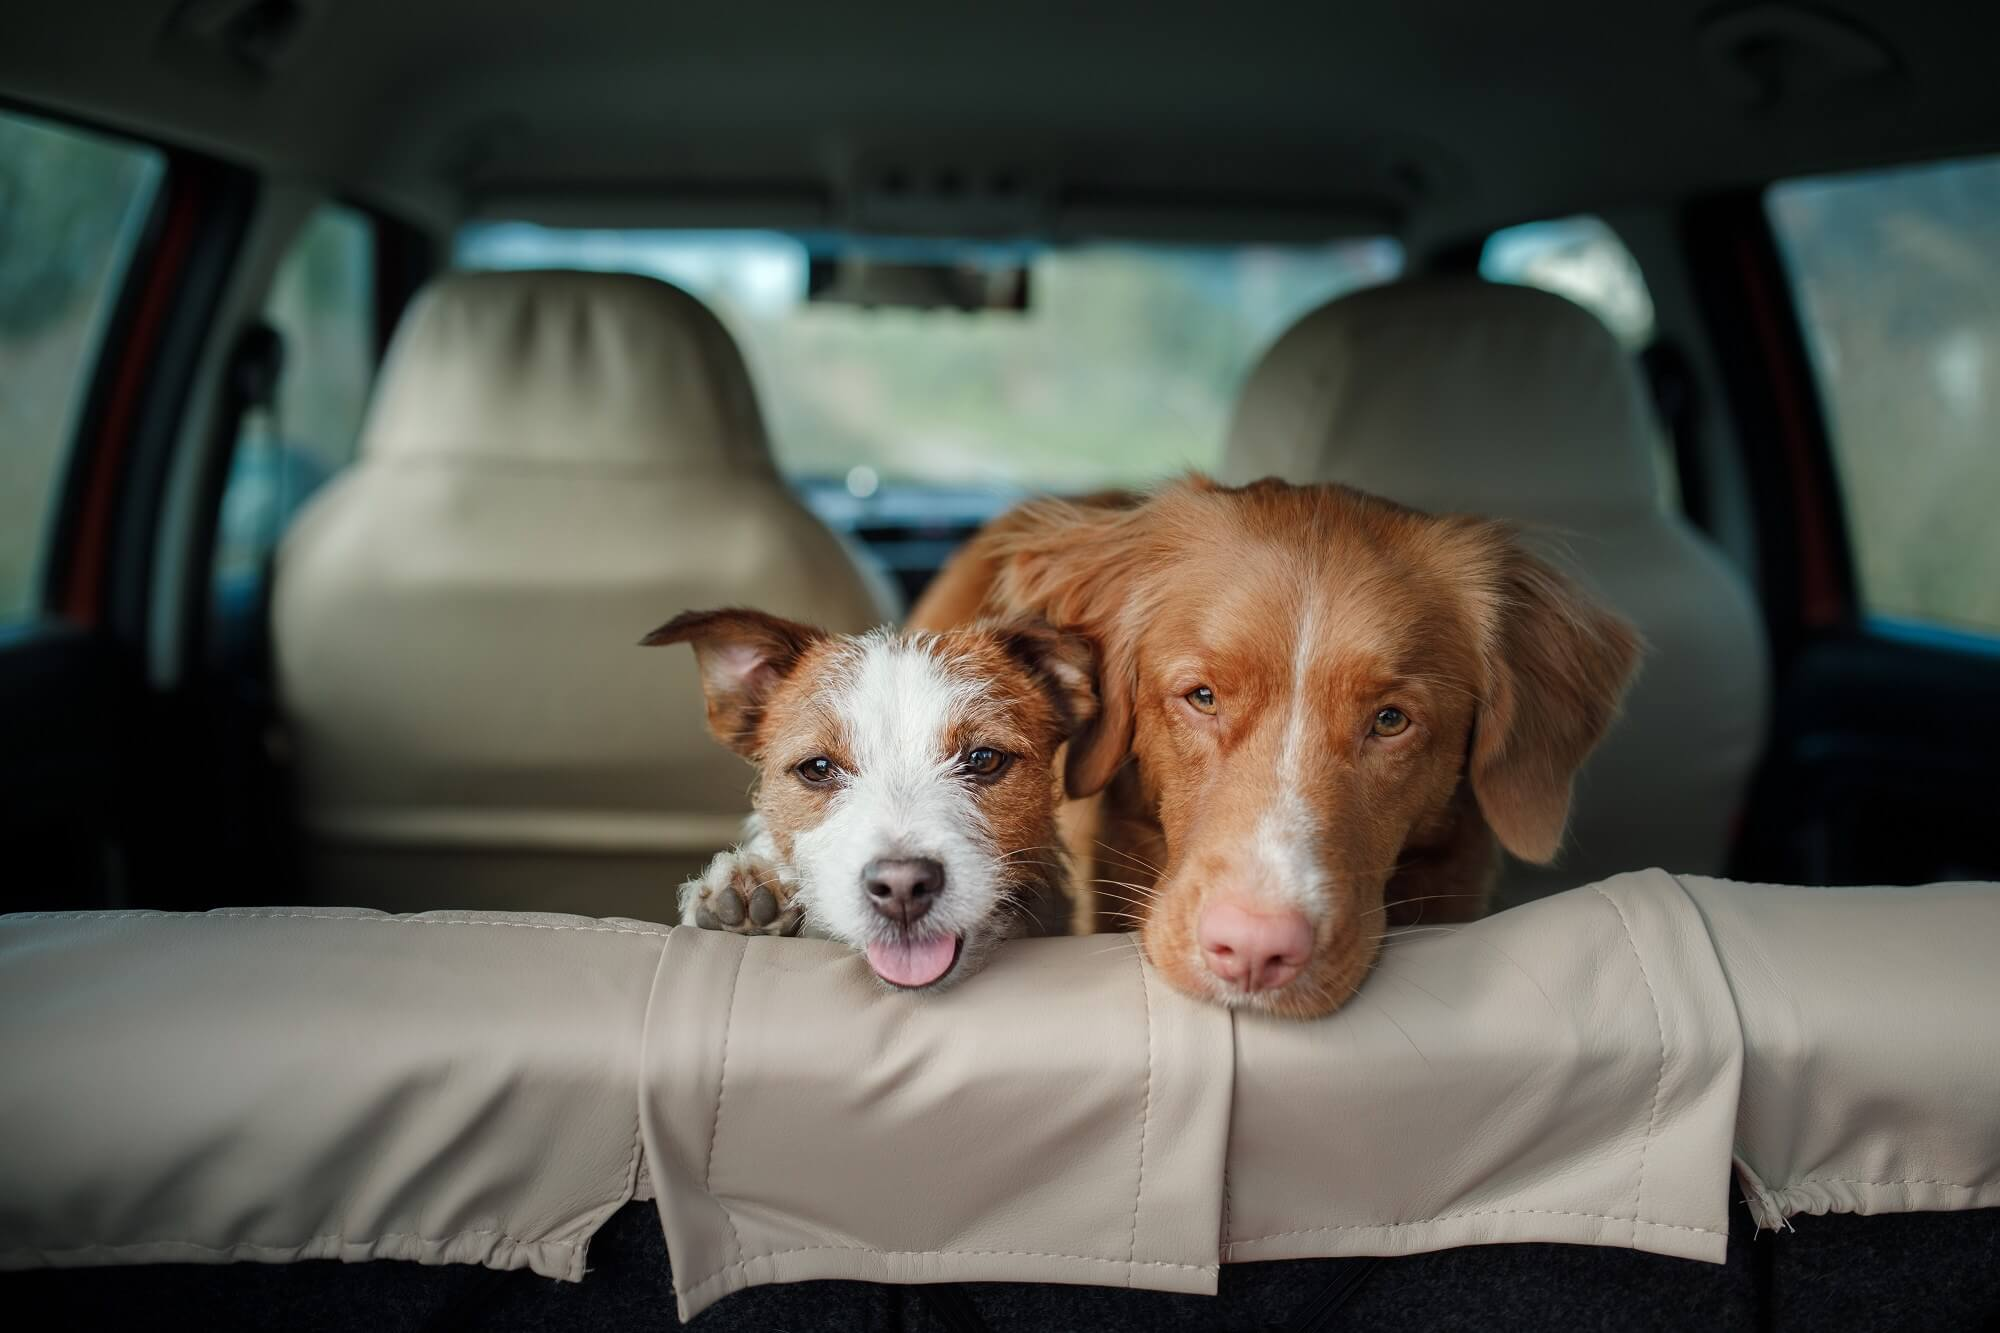 Tesla's New Vehicle Modes Protect Pets, Cars